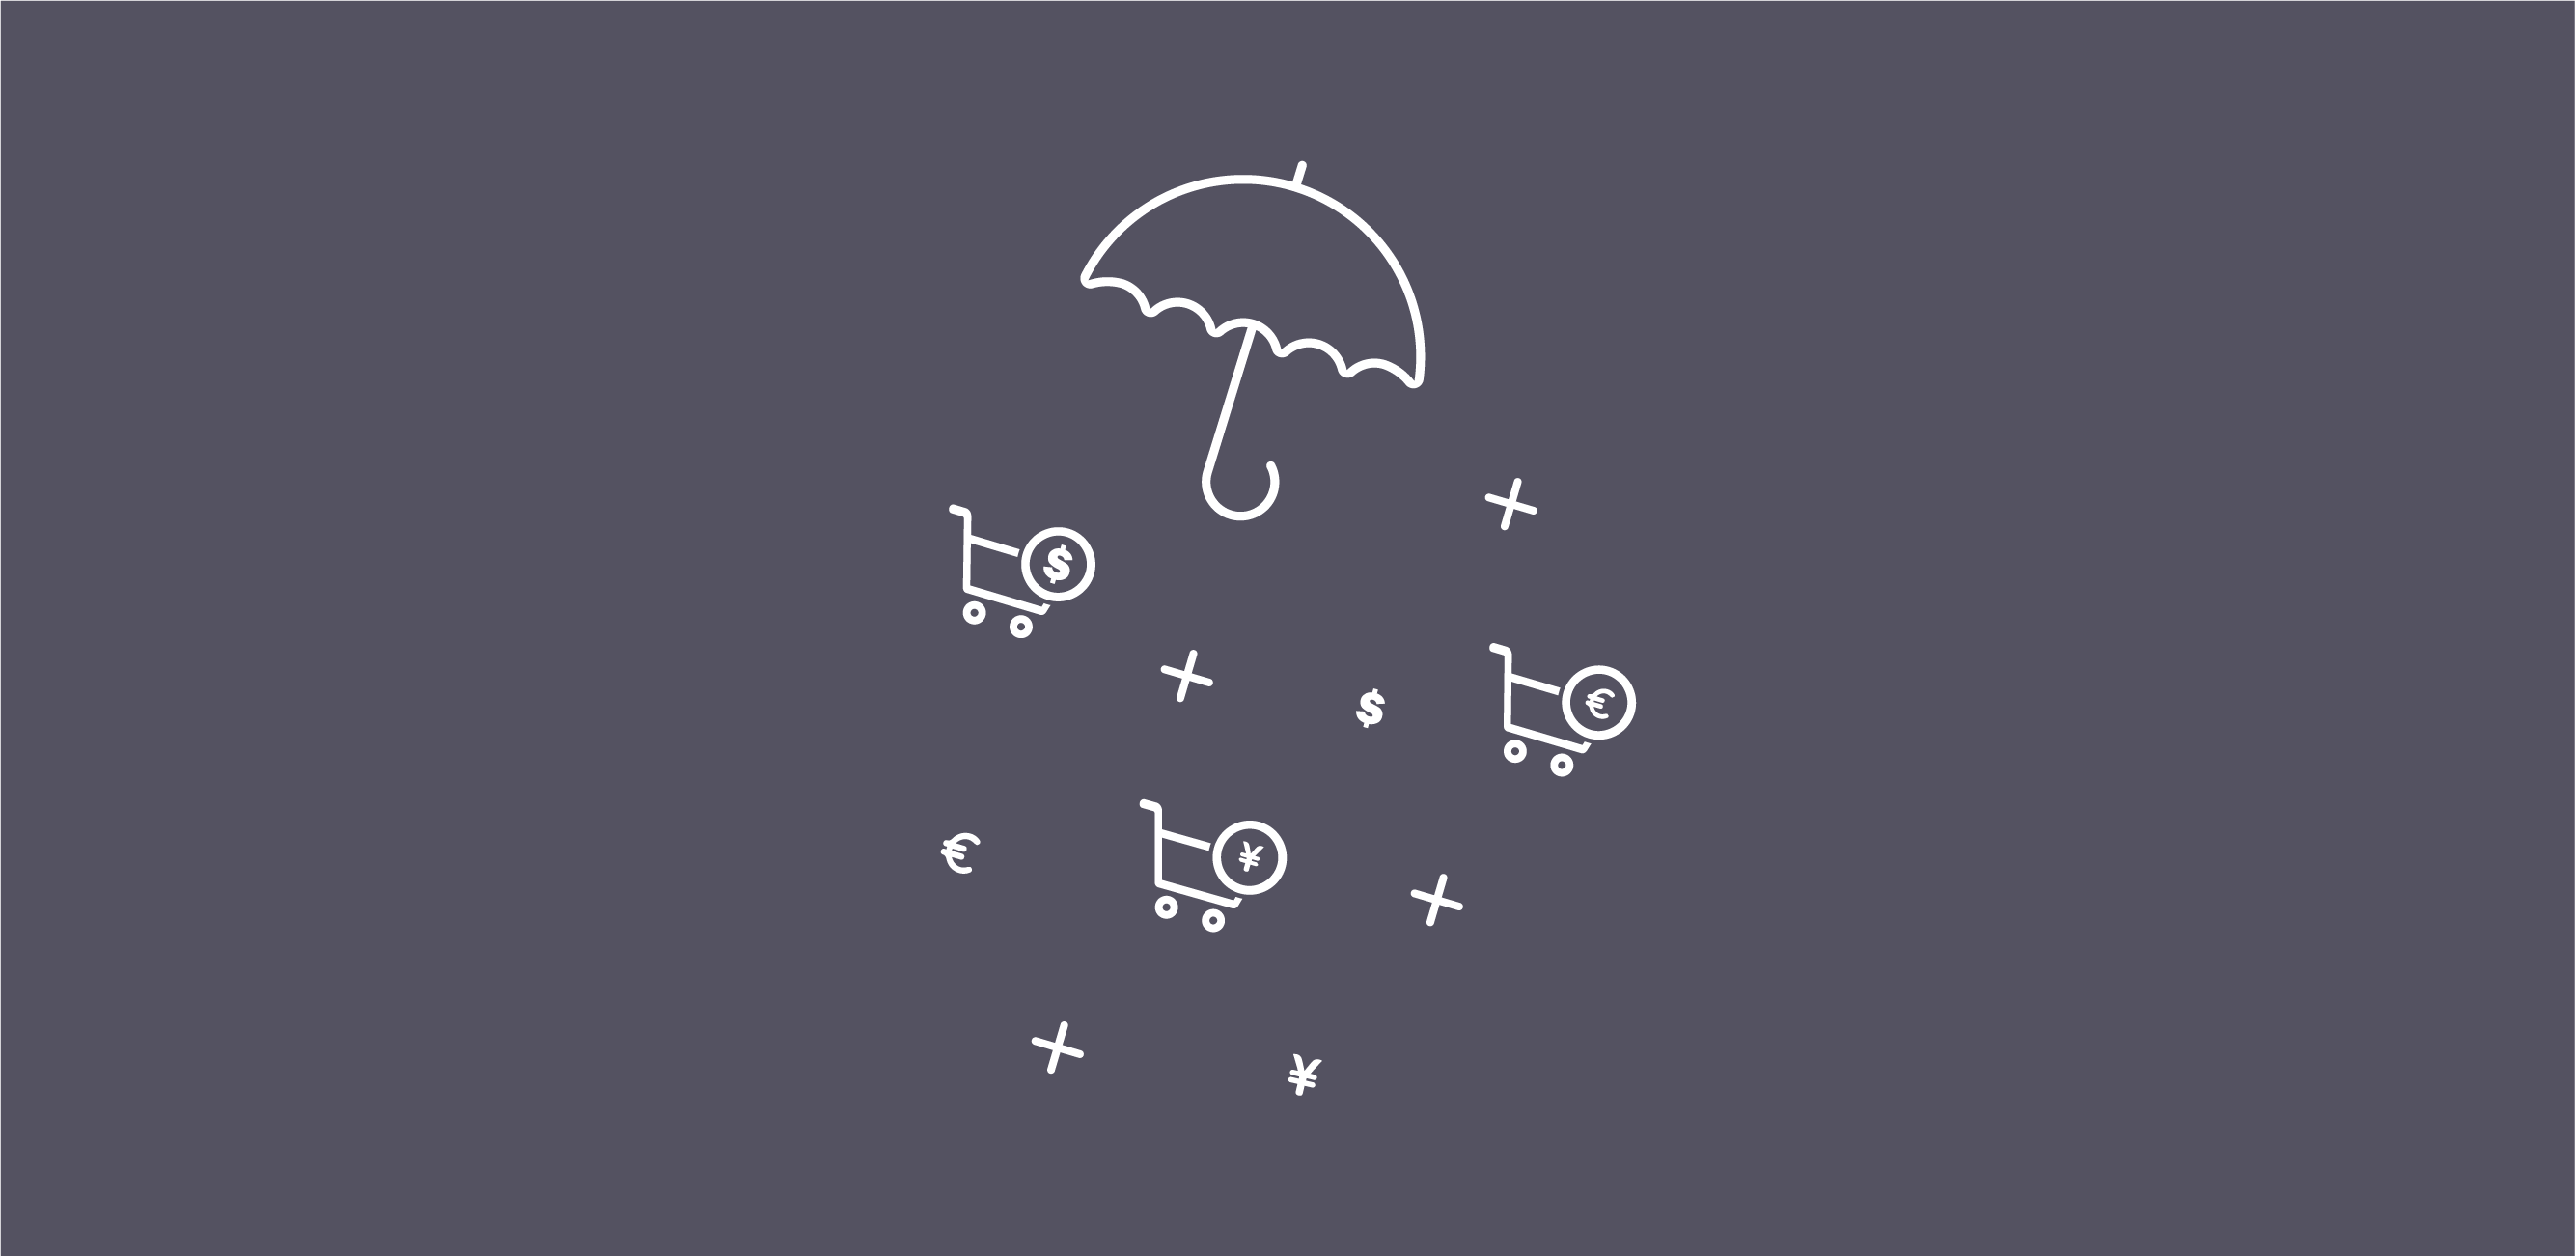 Umbrella with figurative raindrops of currency symbols, shopping carts, and plus signs